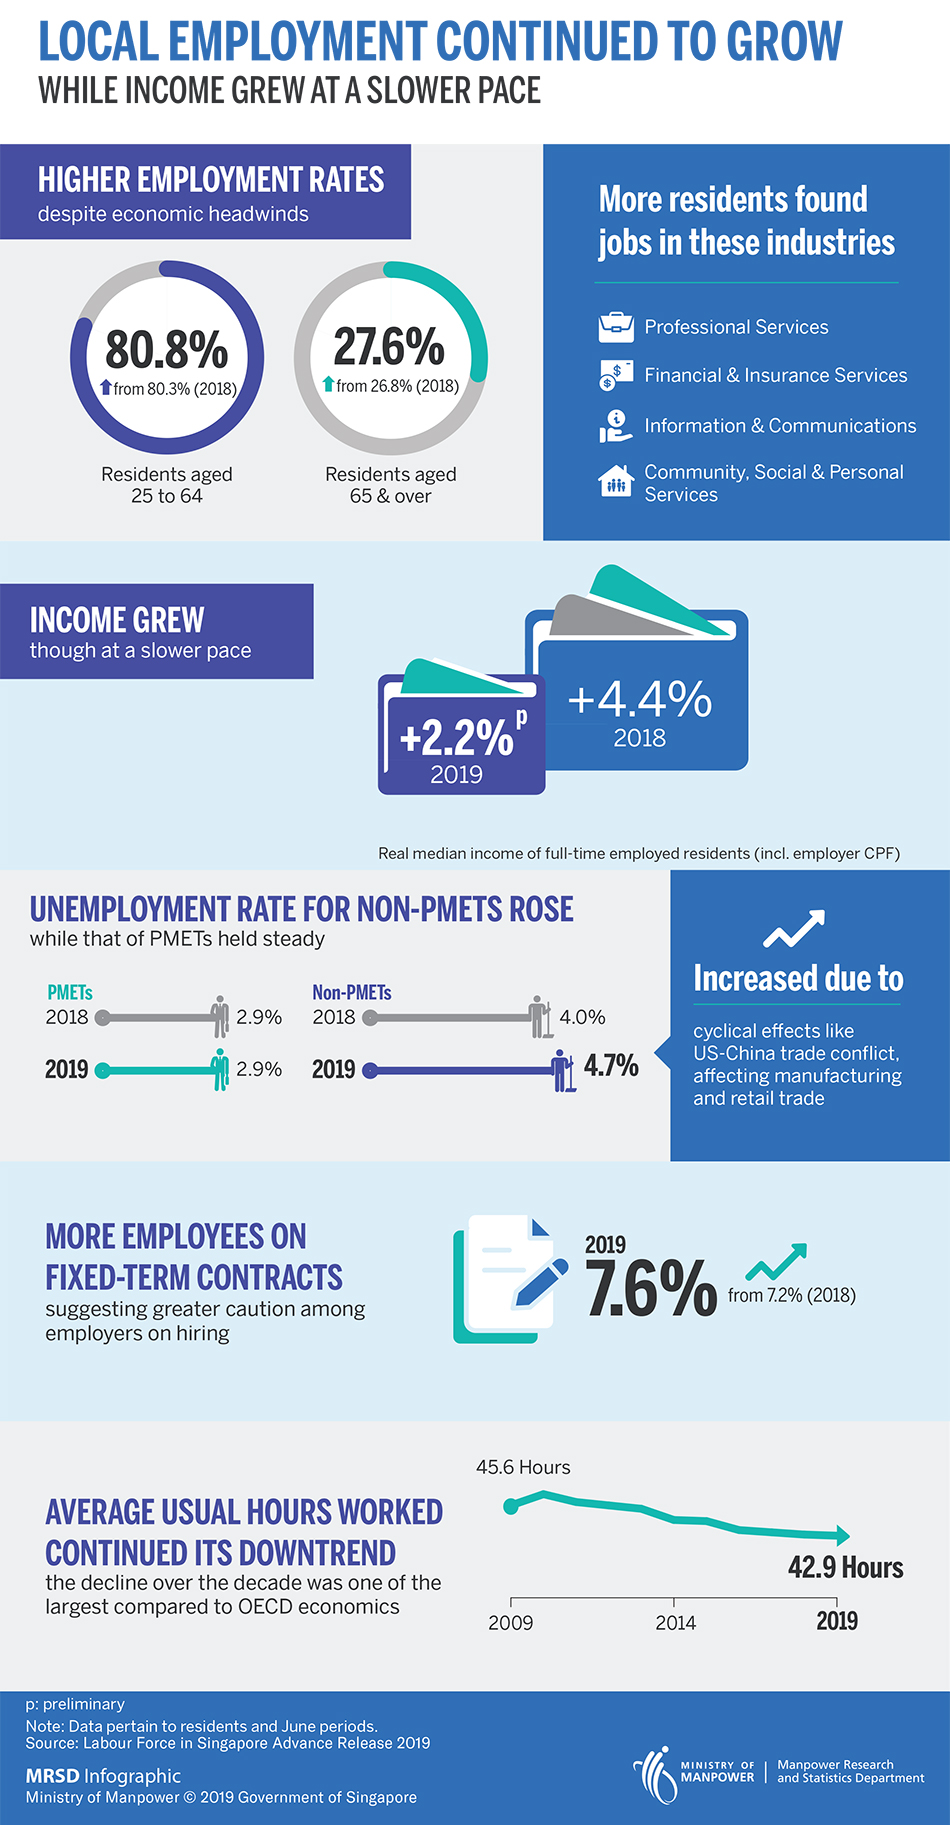 mrsd-infographic-Labour-Force-Advance-Release-2019